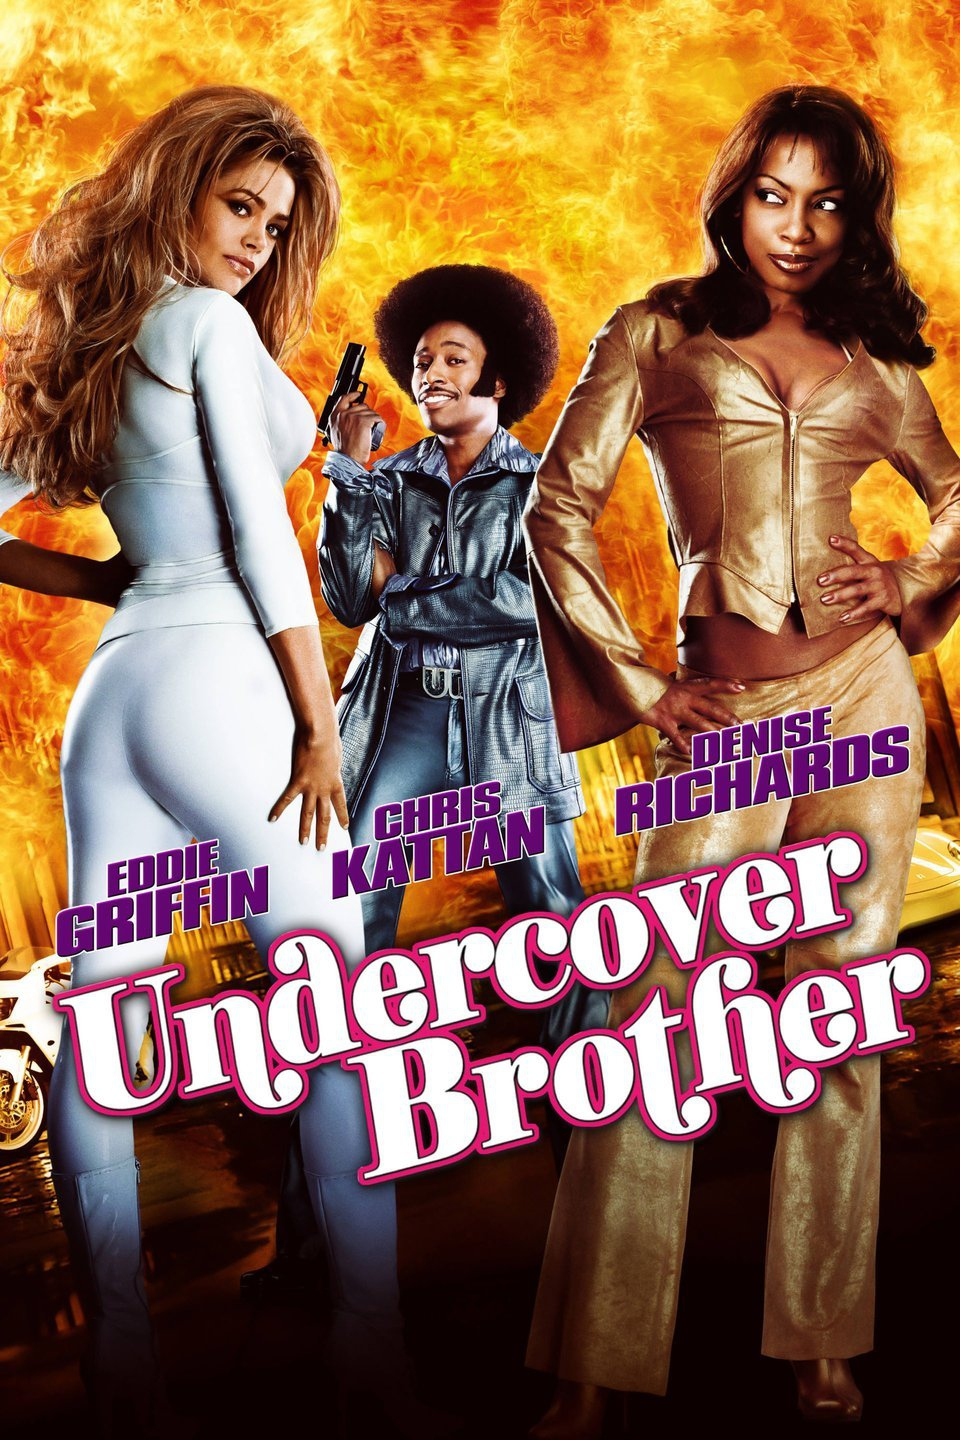 Watch Undercover Brother (2002) Online | Free Trial | The ...